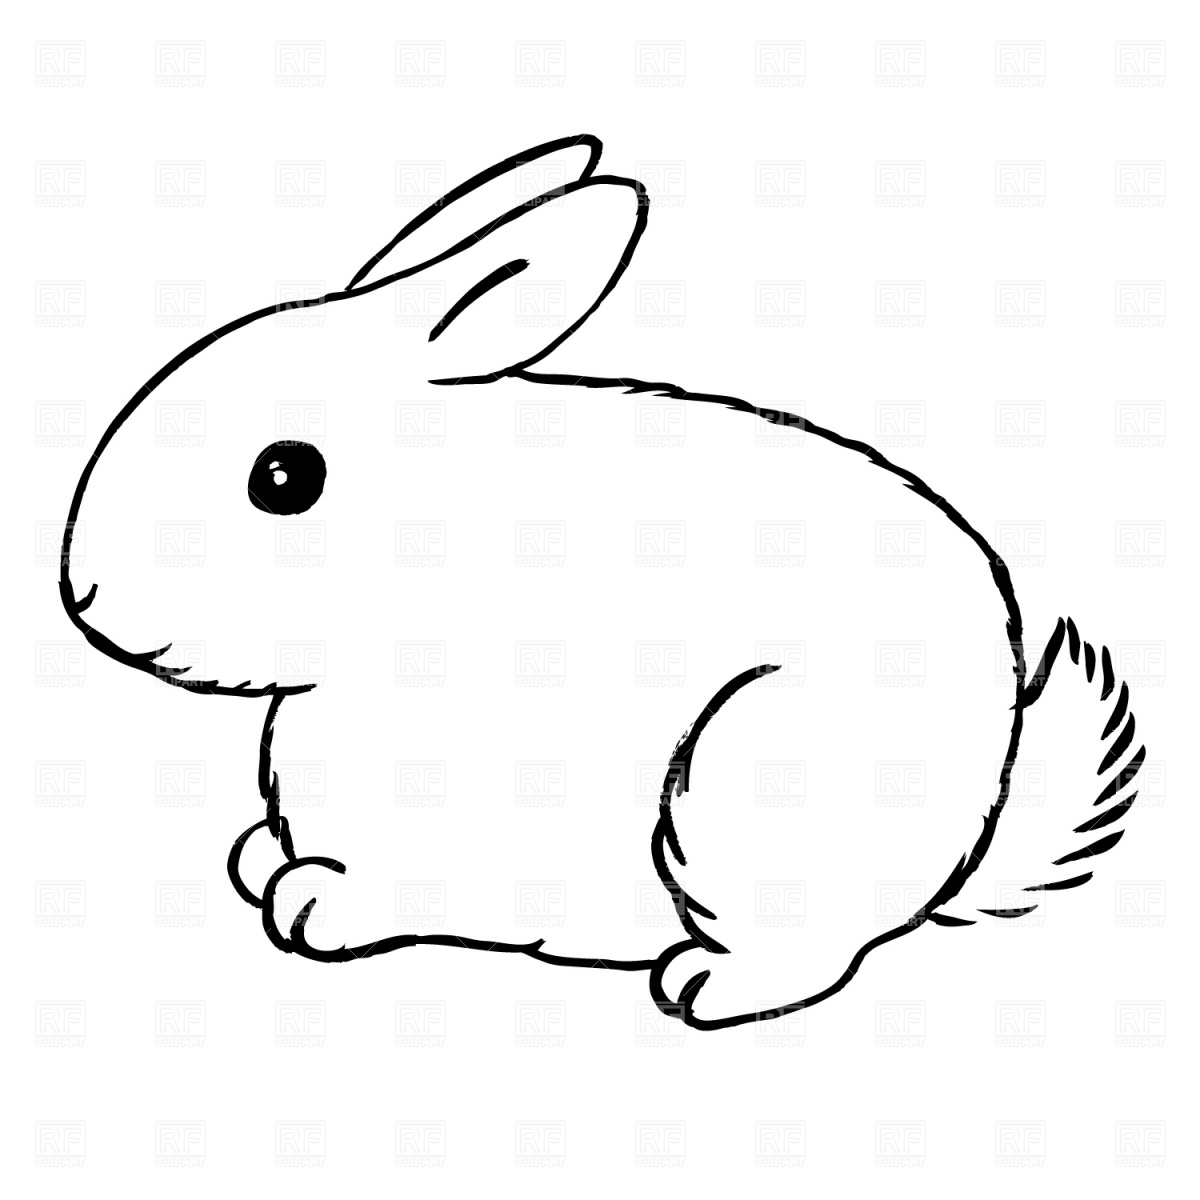 Rabbit clipart black and white Elegant Rabbit bunny clipart.